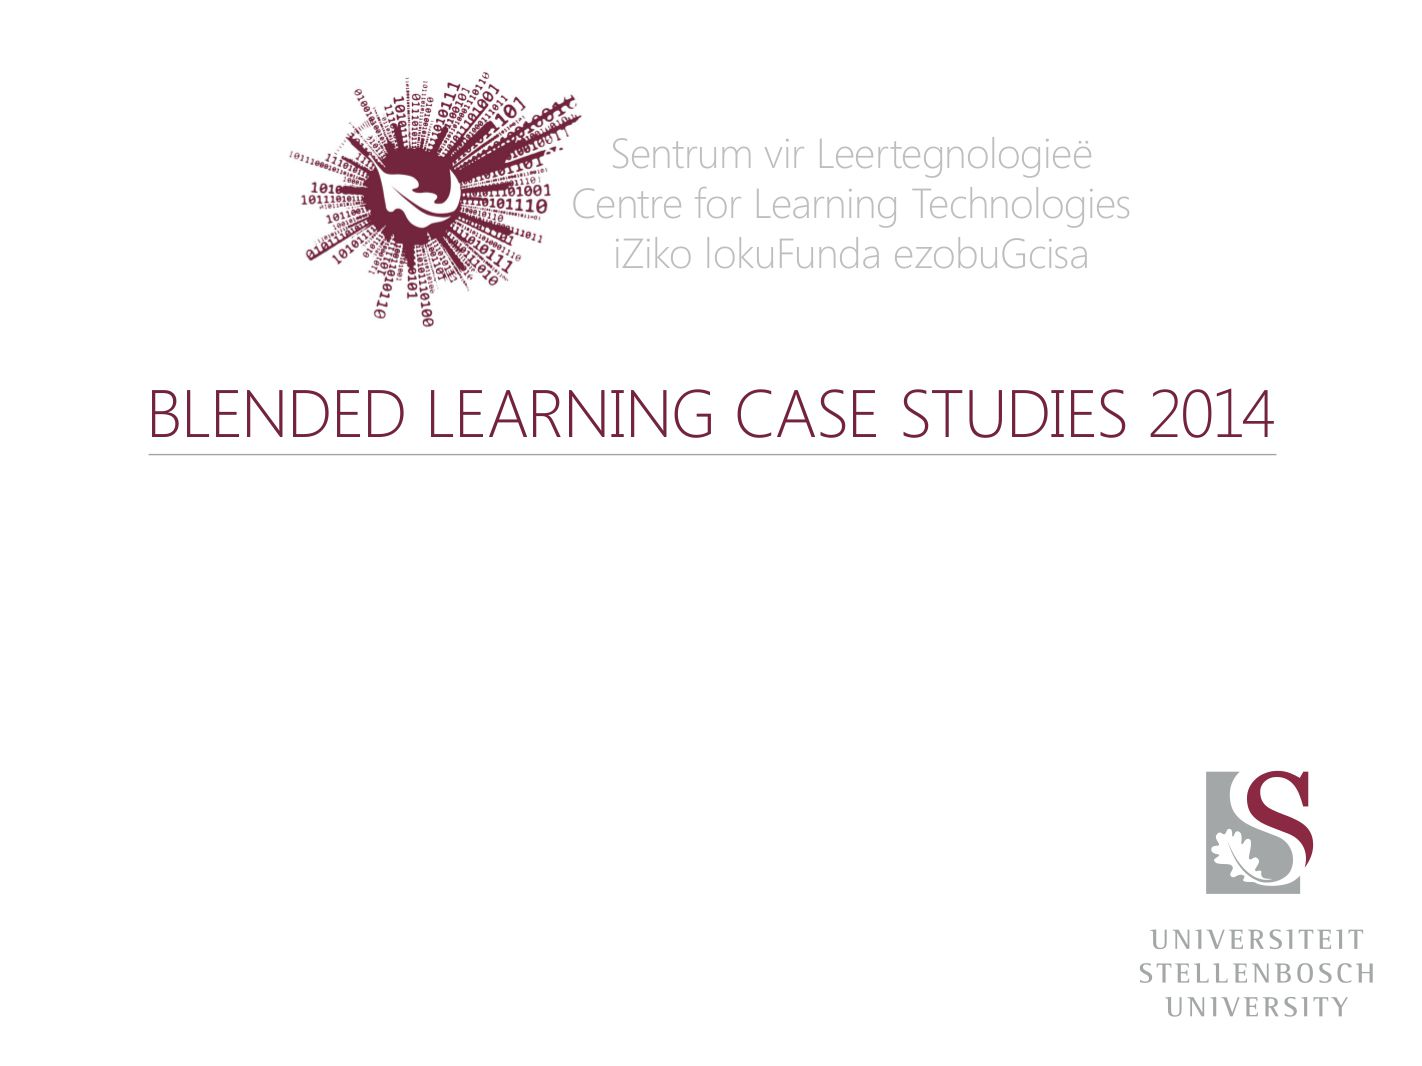 blended learning case studies 2014 SU HELTASA PDSIG